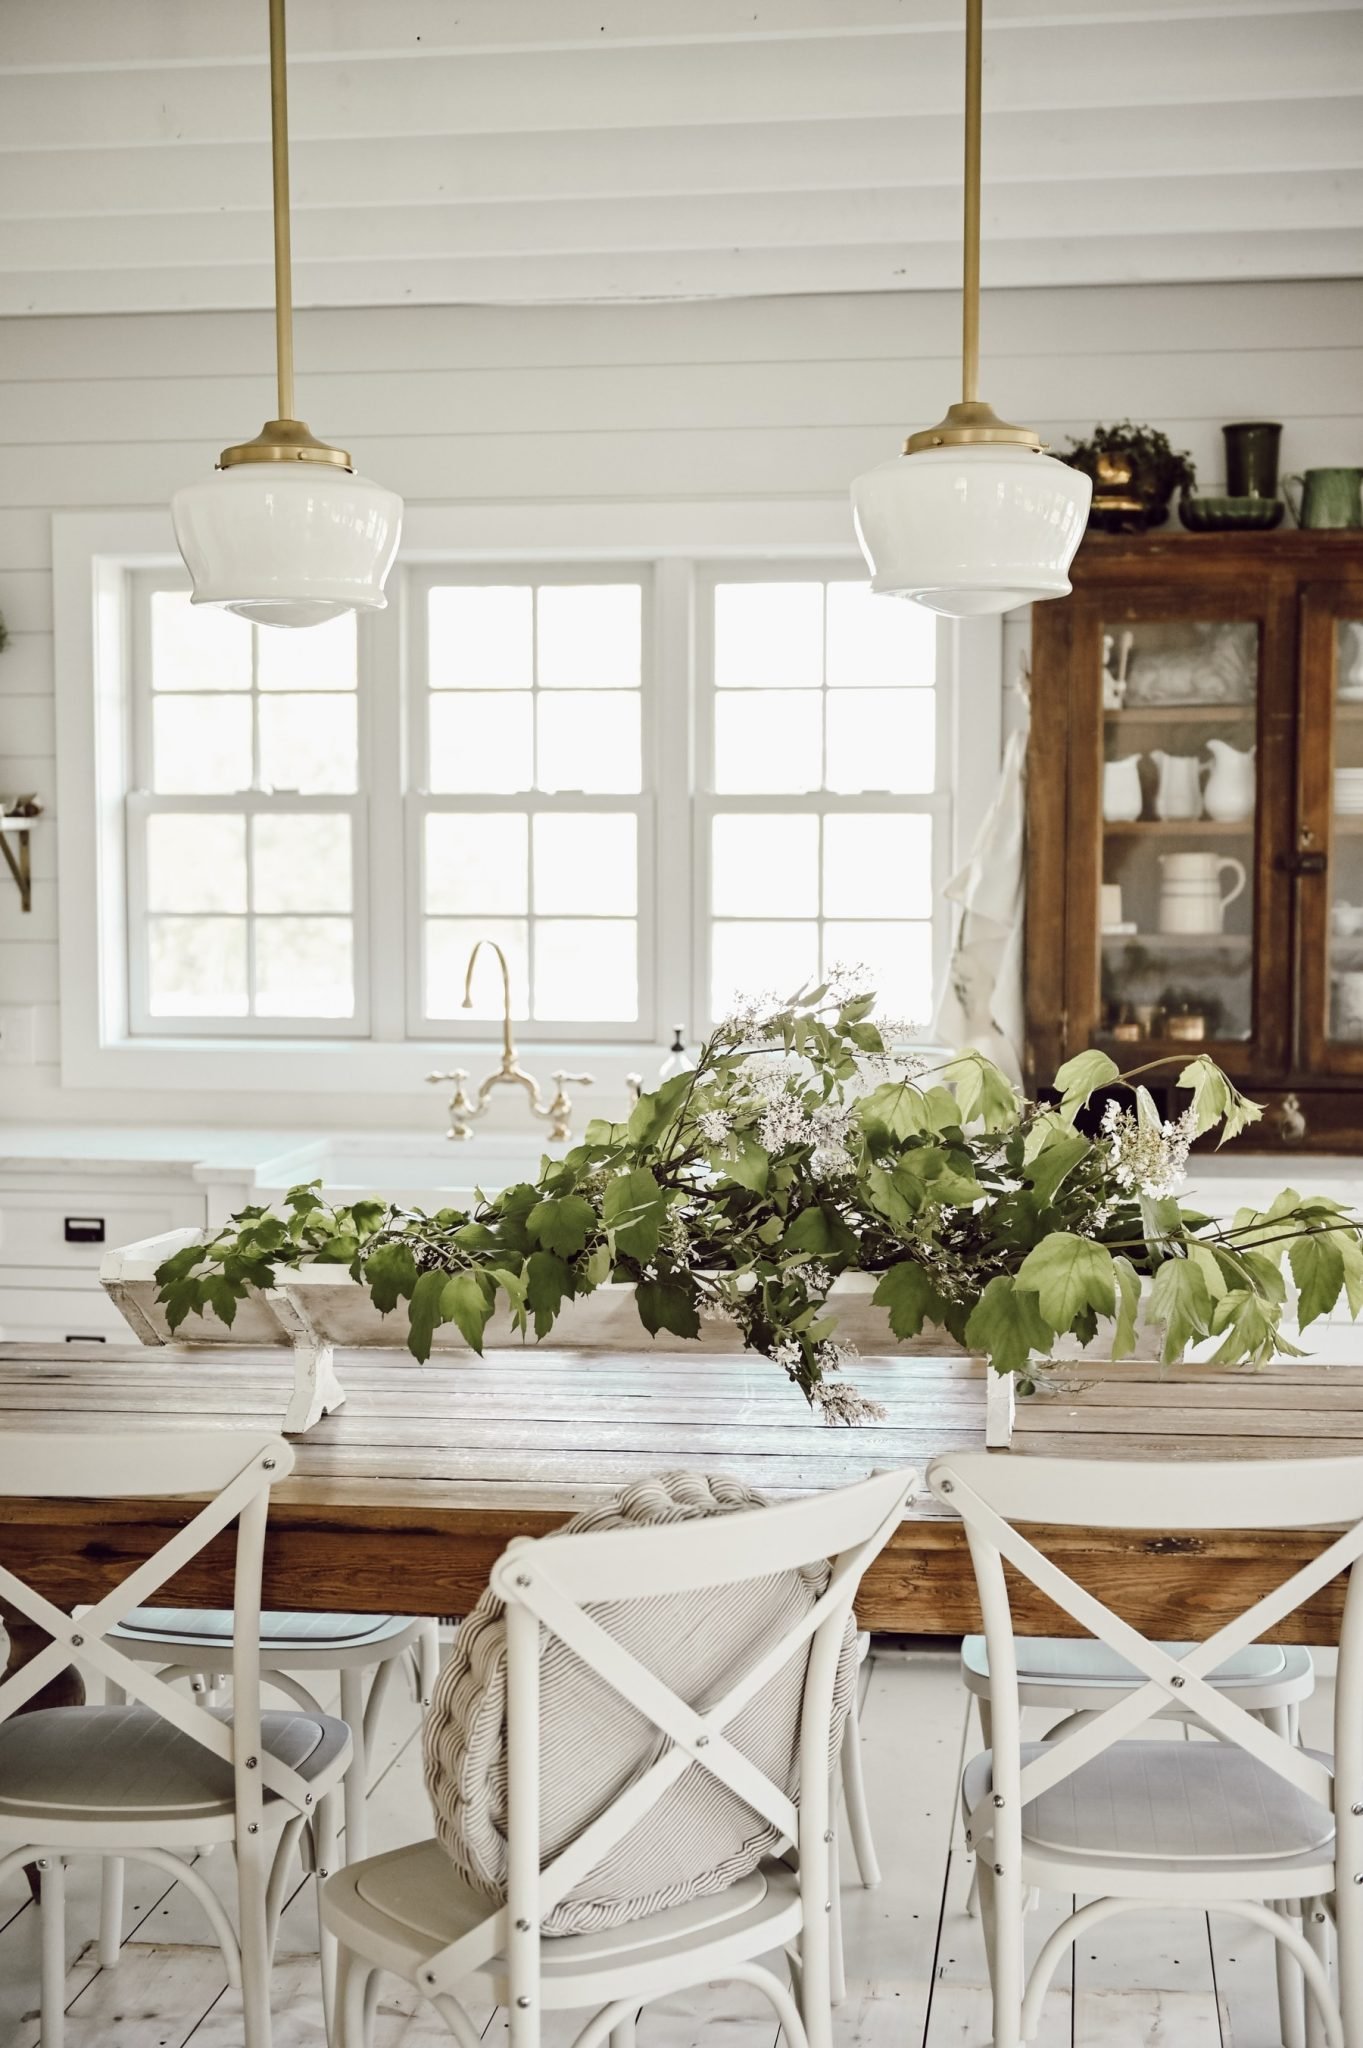 Rustic Trough on dining room table